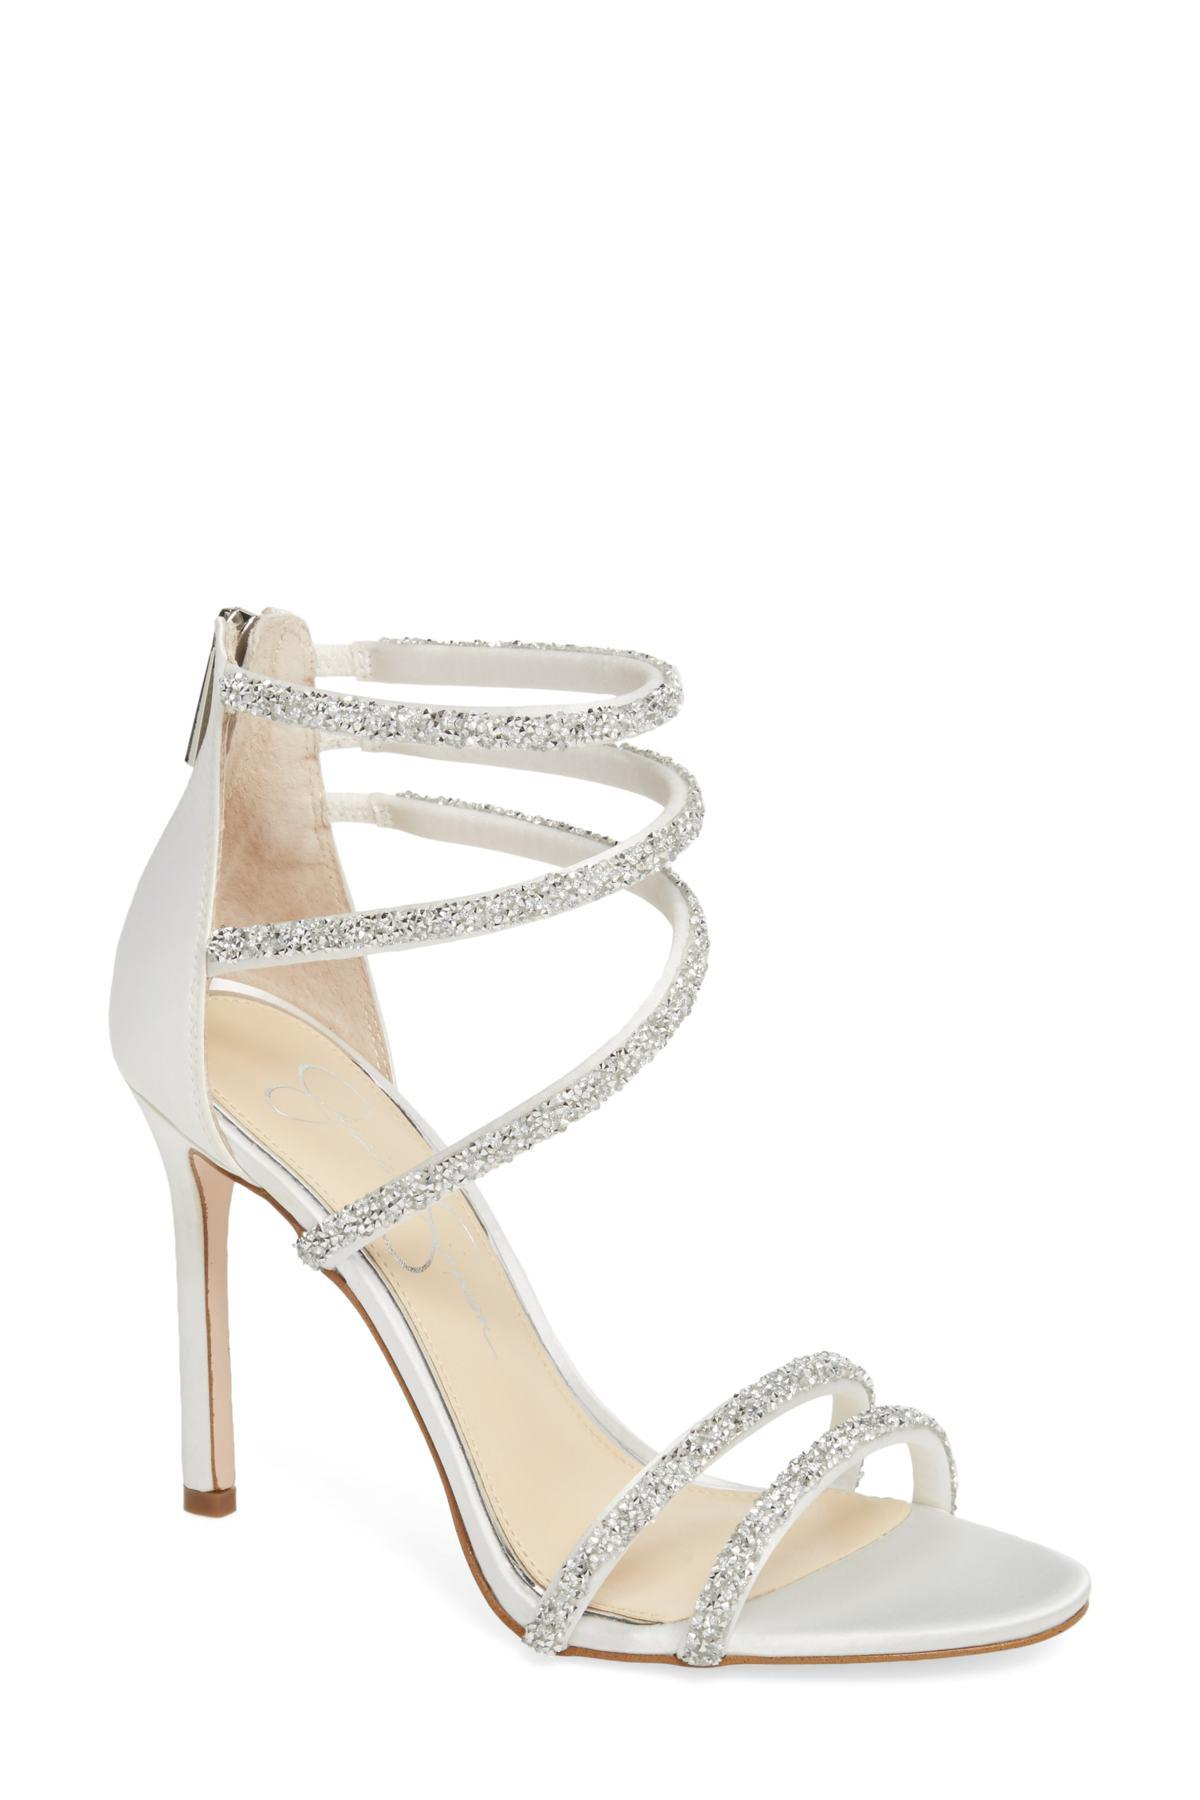 41ad1ce1ead Lyst - Jessica Simpson Jamalee Glitter Sandal (women) in White